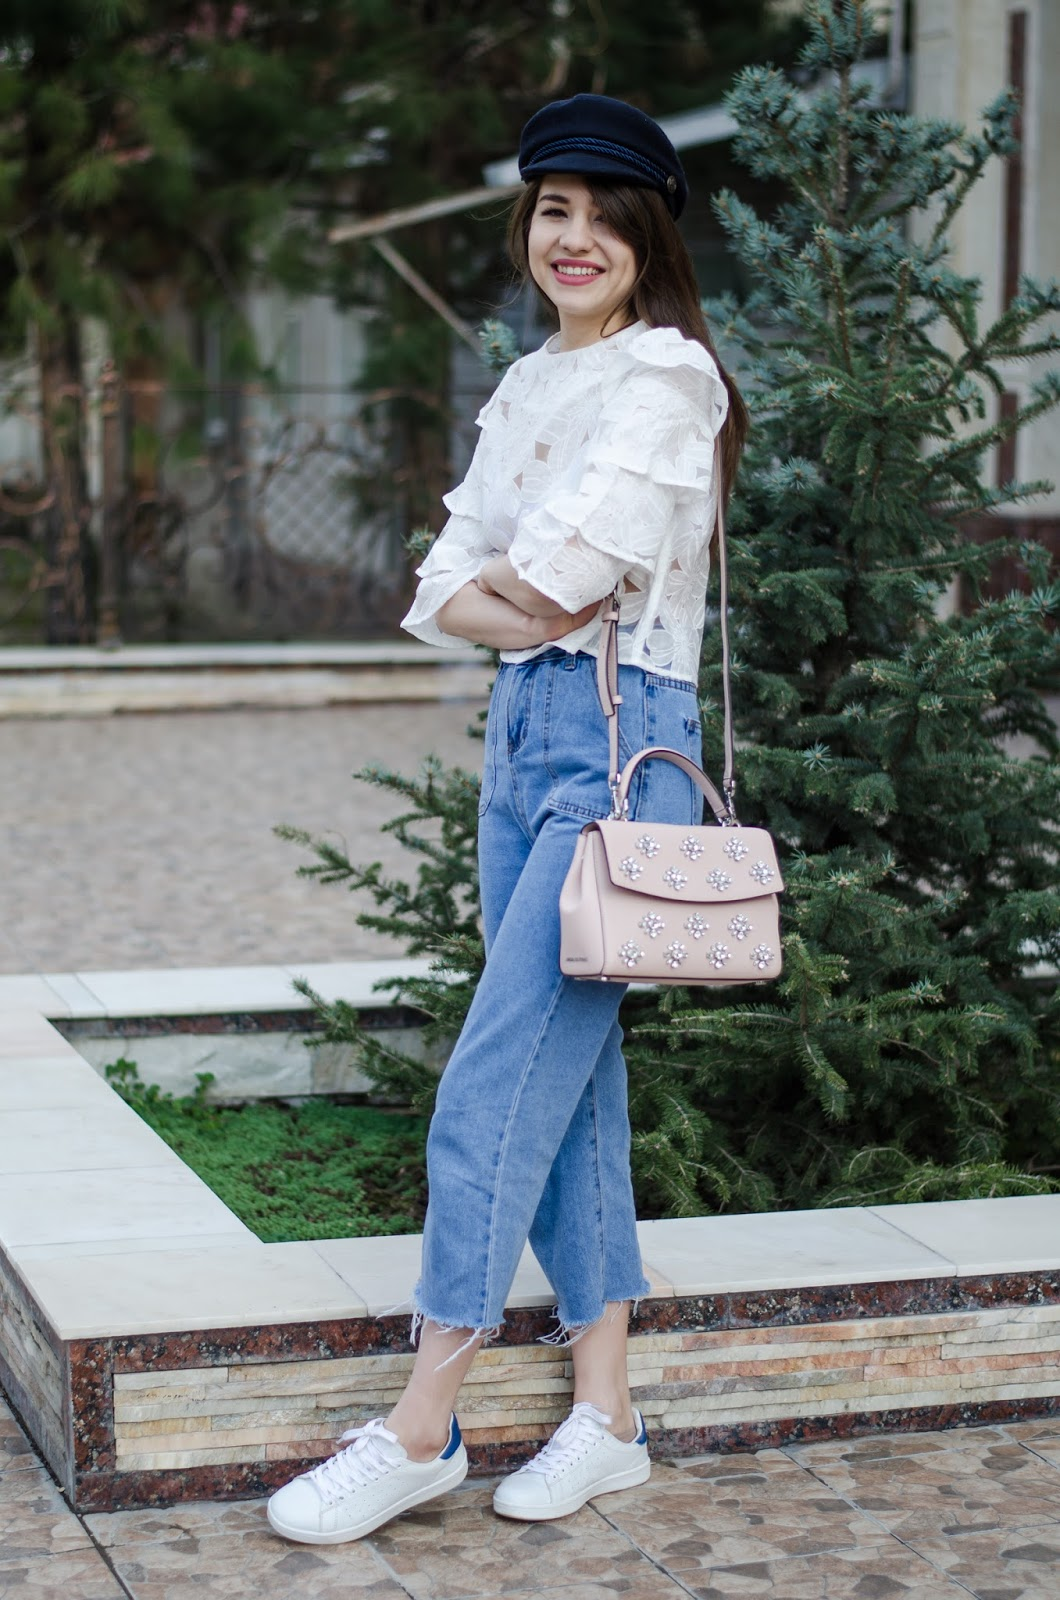 fashion%2Bblogger%2Bdiyorasnotes%2Bdiyora%2Bbeta%2Boutfitoftheday%2Bcap%2Bmom%2Bjeans%2Bwhite%2Bblouse%2Btop%2Bruffles%2Bwhite%2Bsneakers%2Bmichael%2Bkors%2Bbag 13 - MOM JEANS, SNEAKERS AND RUFFLE TOP